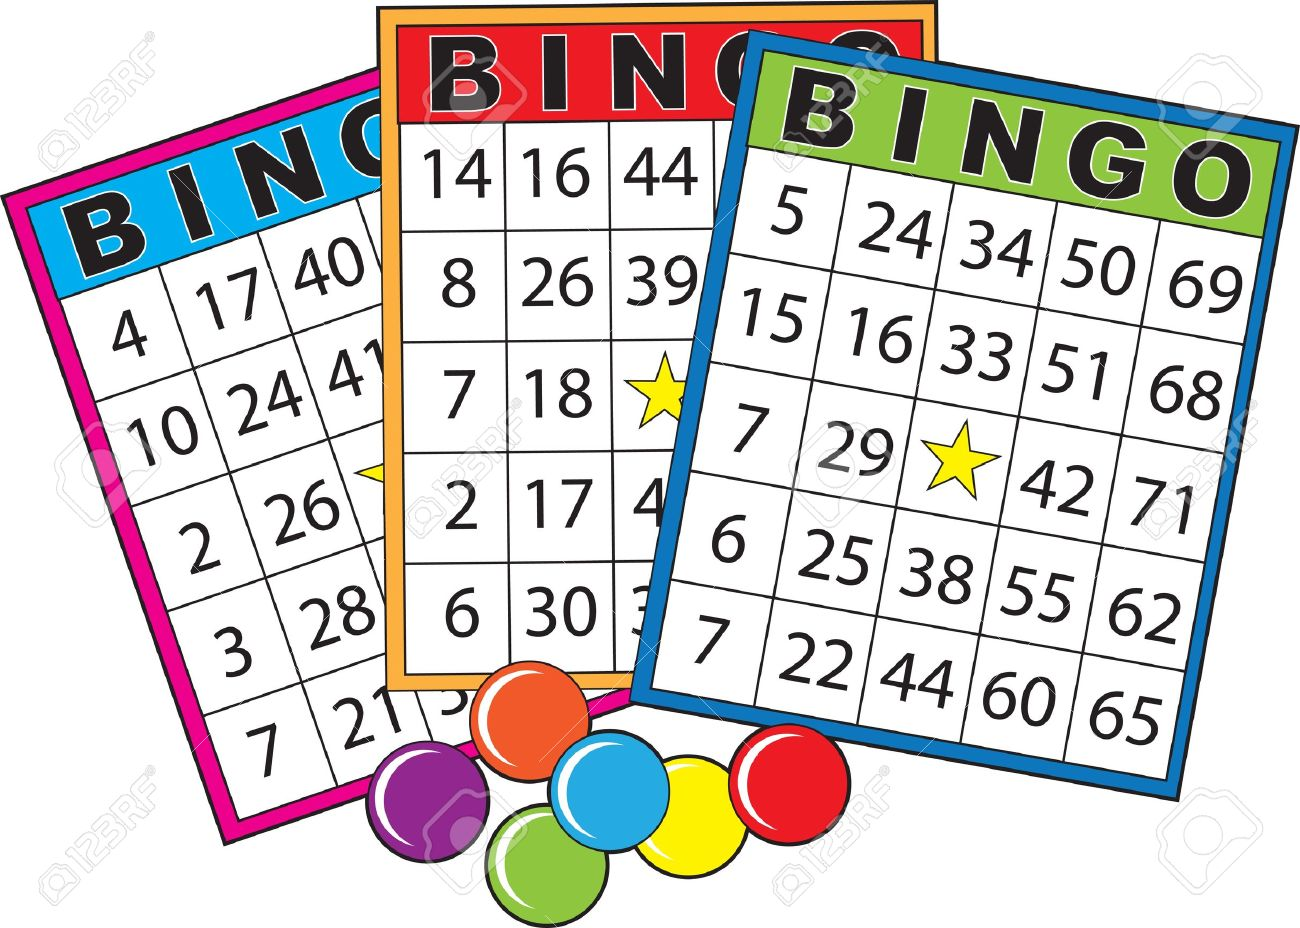 Super Three Colorful Bingo Cards. Stock Photo, Picture And Royalty Free OT-32